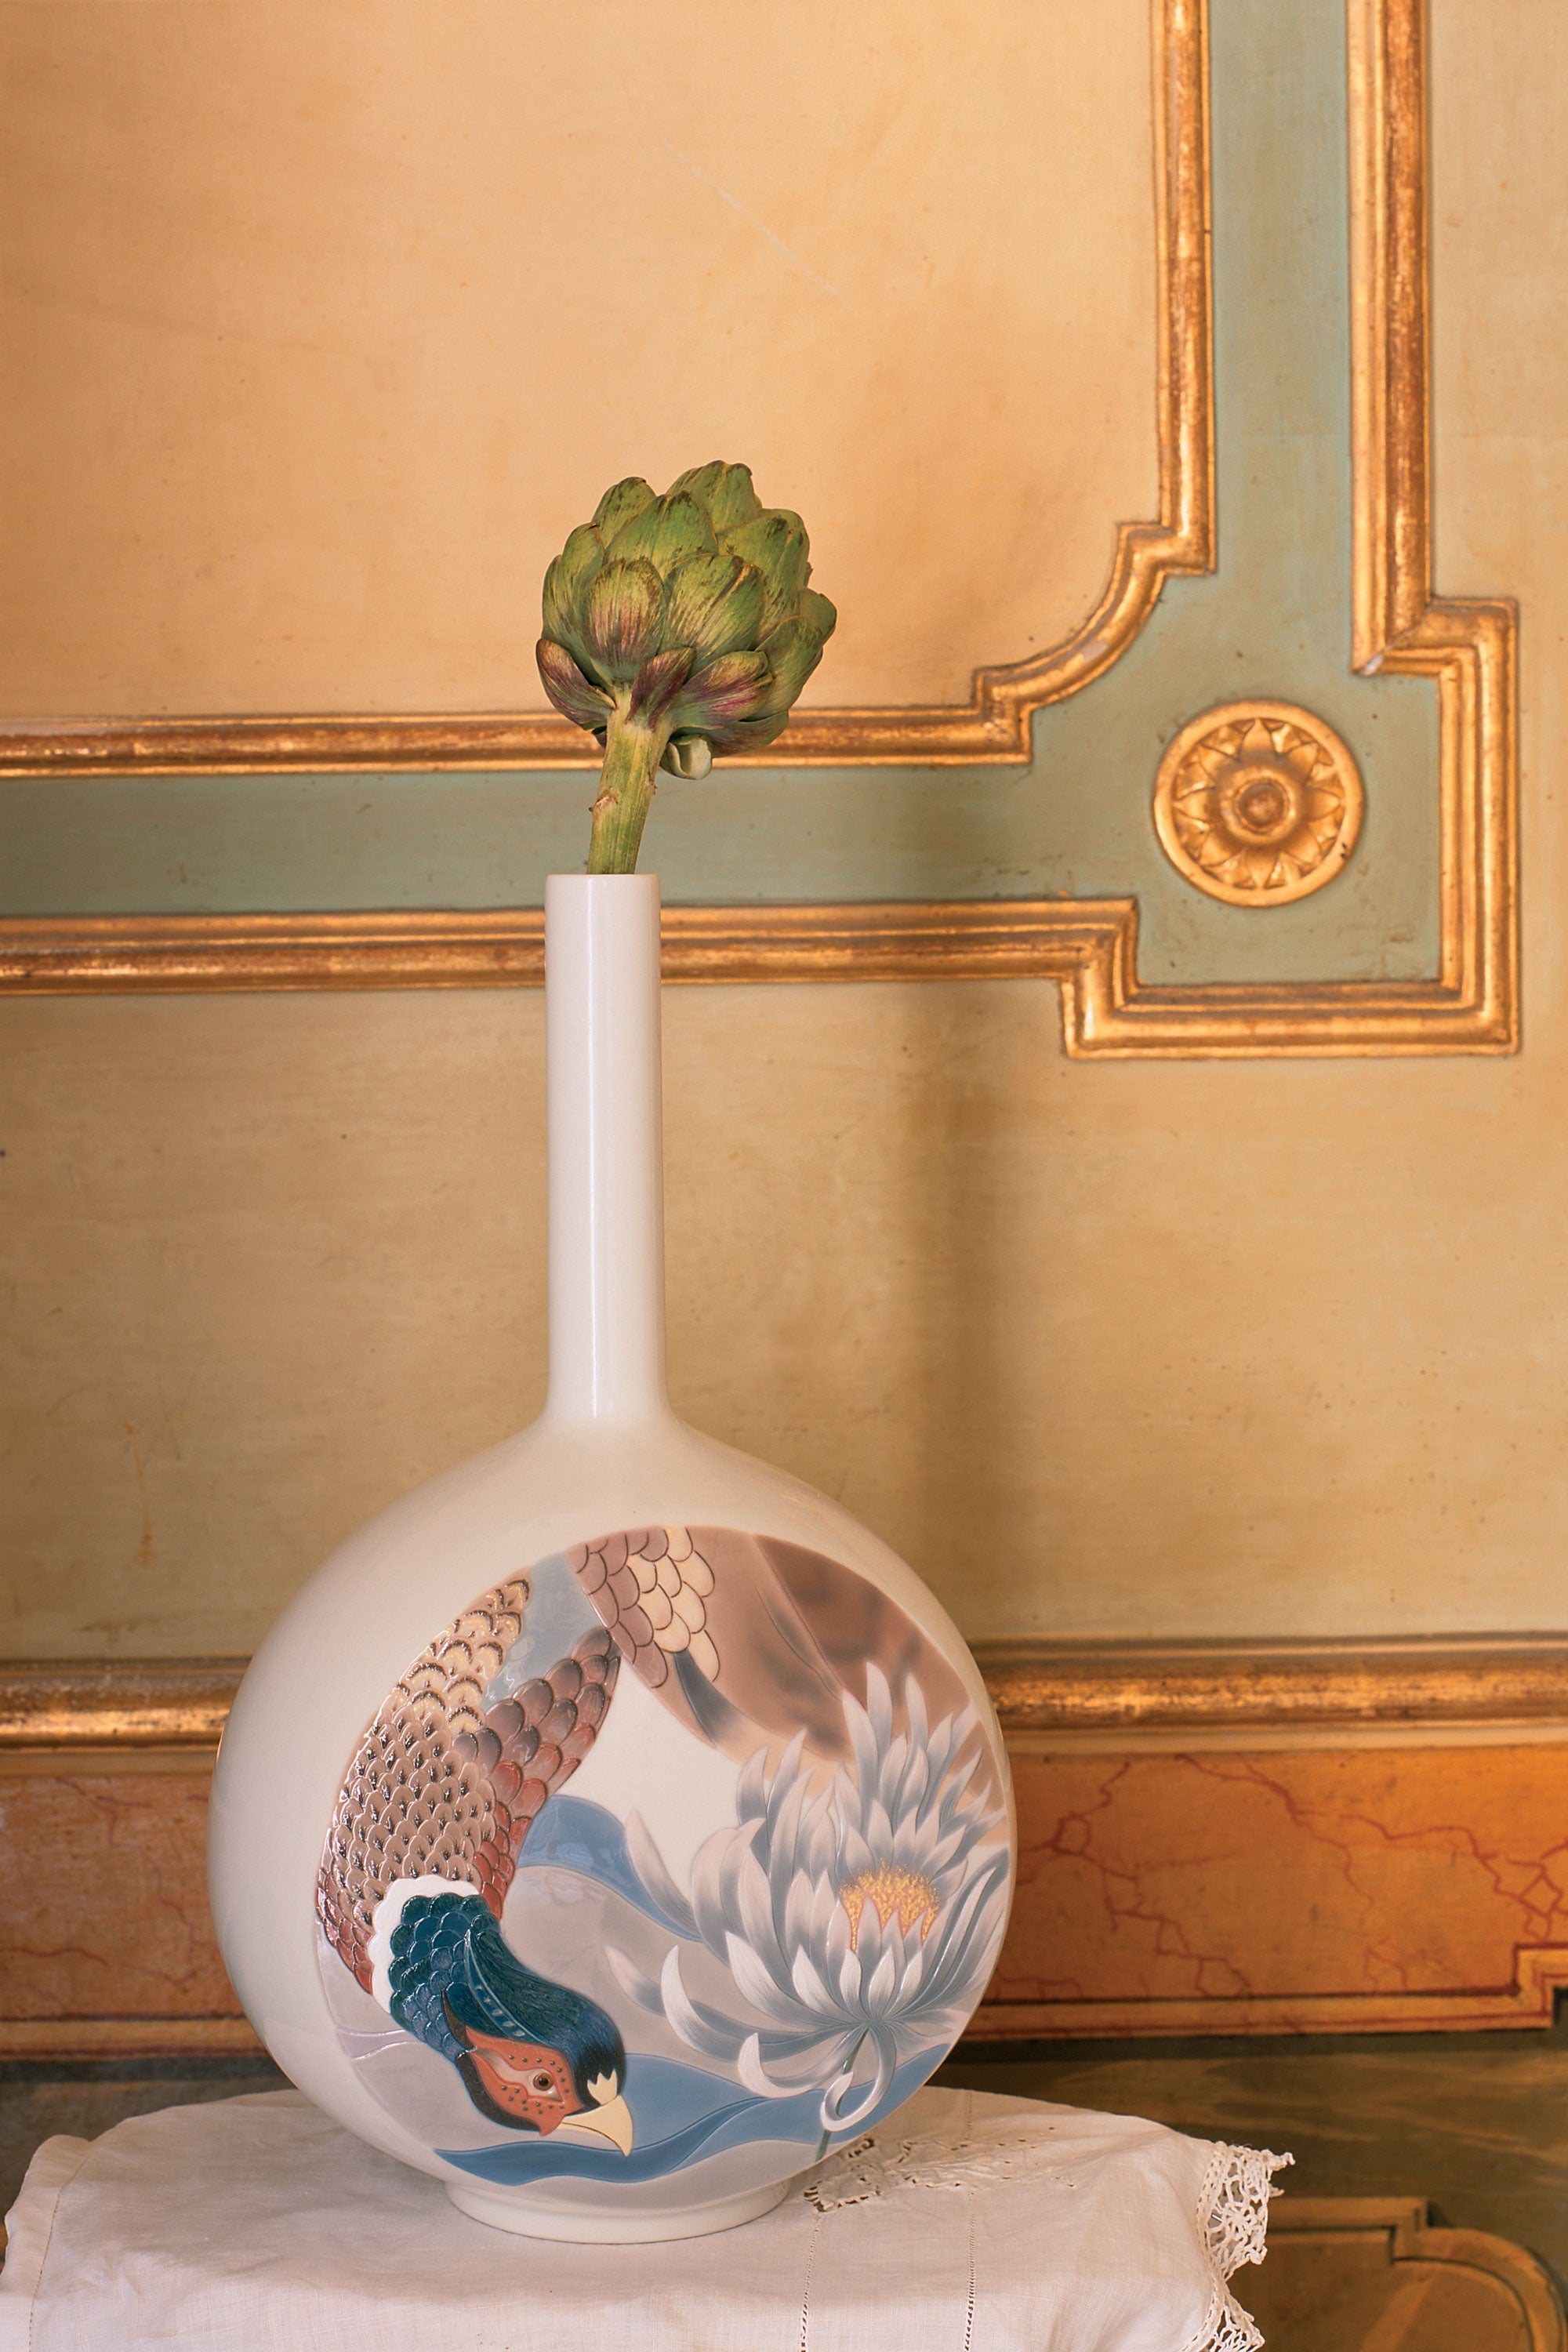 Lladro Ceramic Canvas Vase Designed by London Based Studio Bodo Sperlein